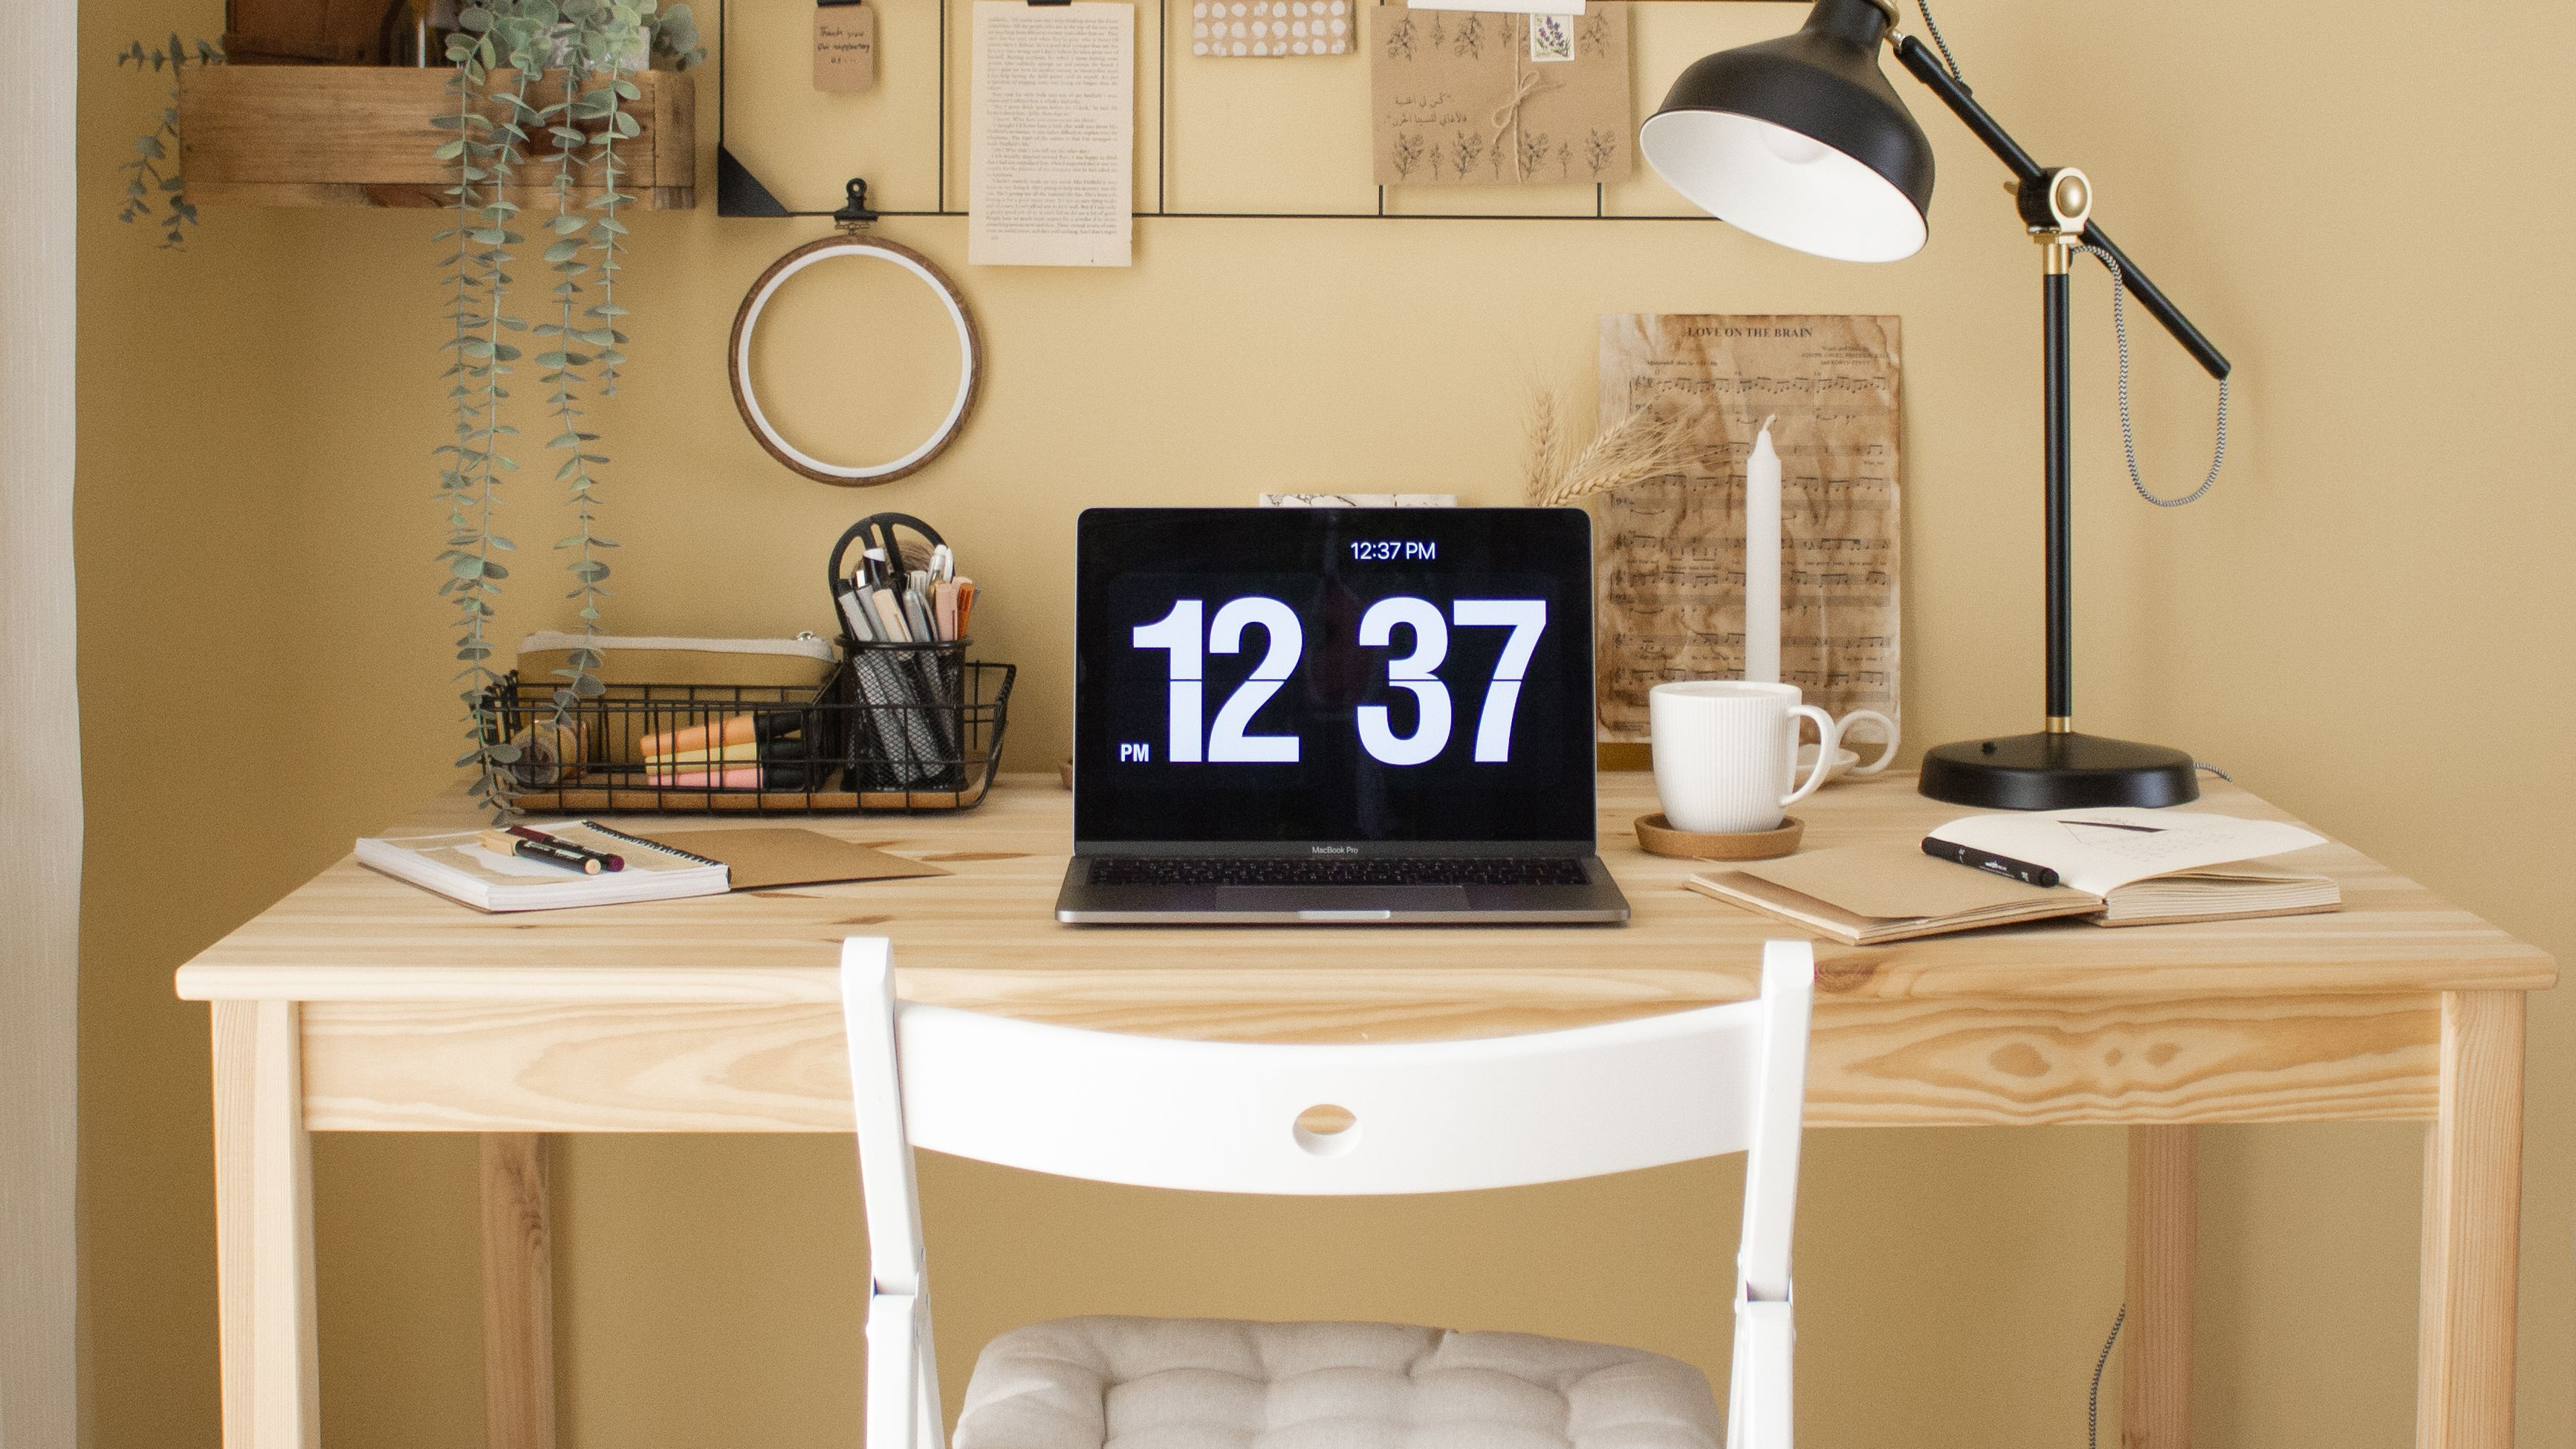 8 Ways to Make Your Home Office More Comfortable